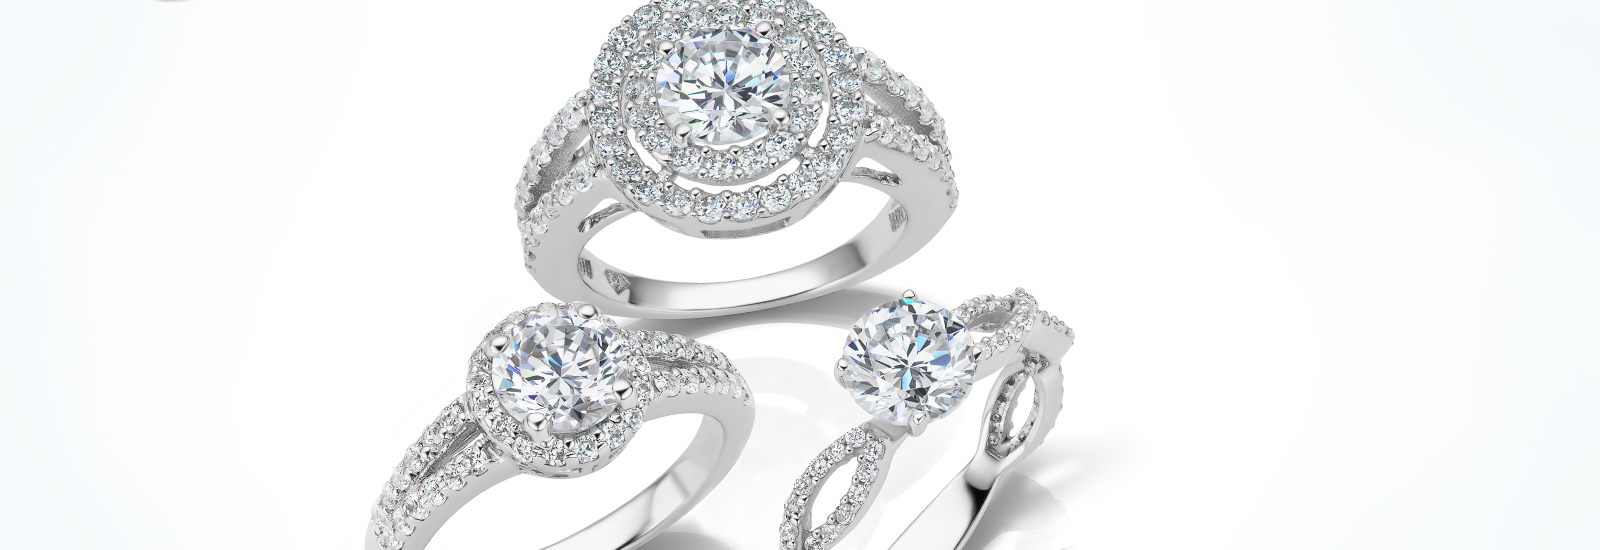 all the ring collections represented by diamond engagement rings including classic, solitaire, contemporary, halo and three stone